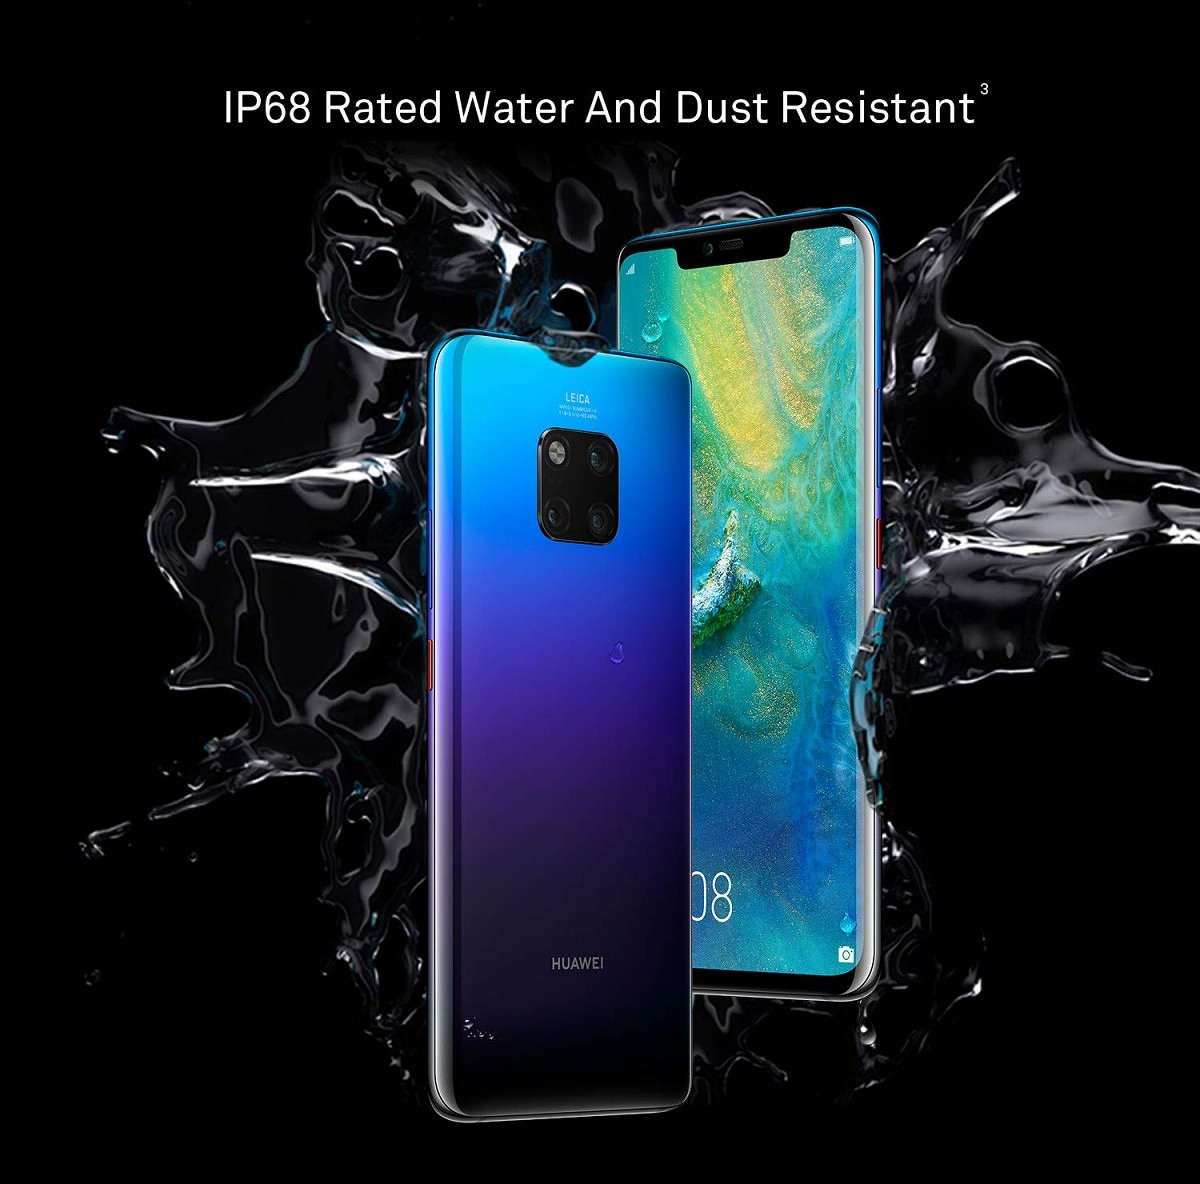 Huawei Mate 20 Pro launched in India with Kirin 980 for